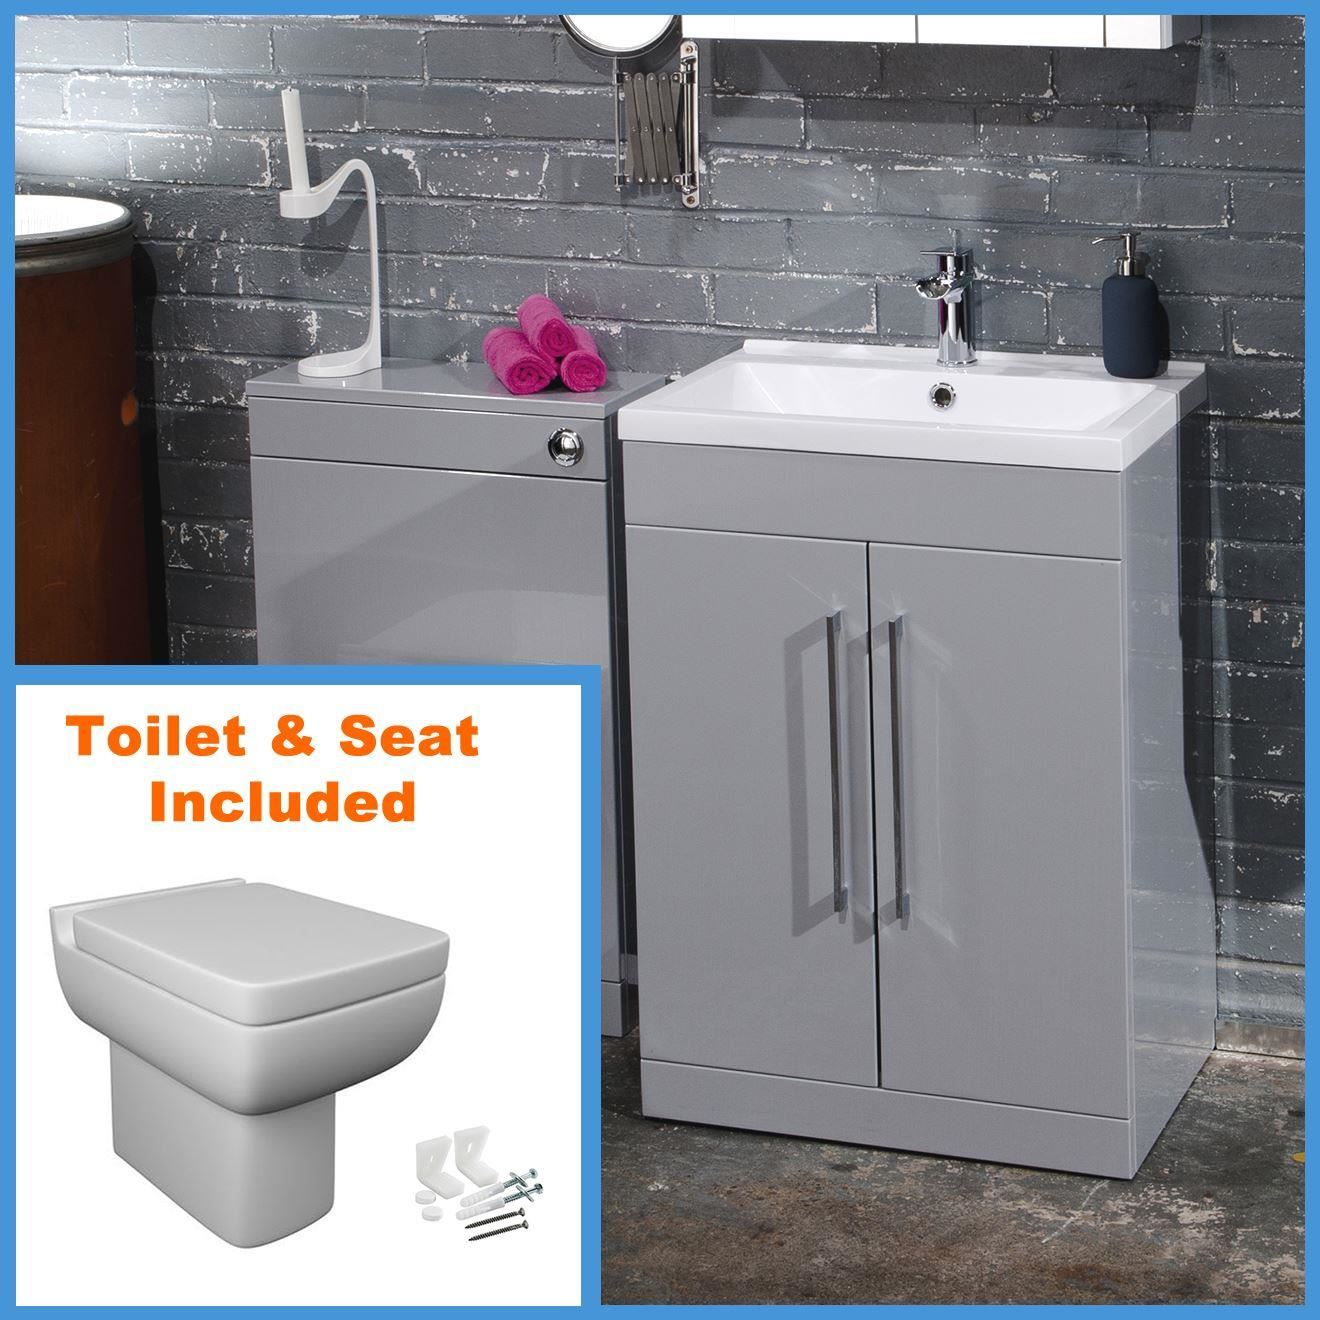 modern grey vanity unit wc unit bathroom furniture cabinet basin btw toilet ebay. Black Bedroom Furniture Sets. Home Design Ideas